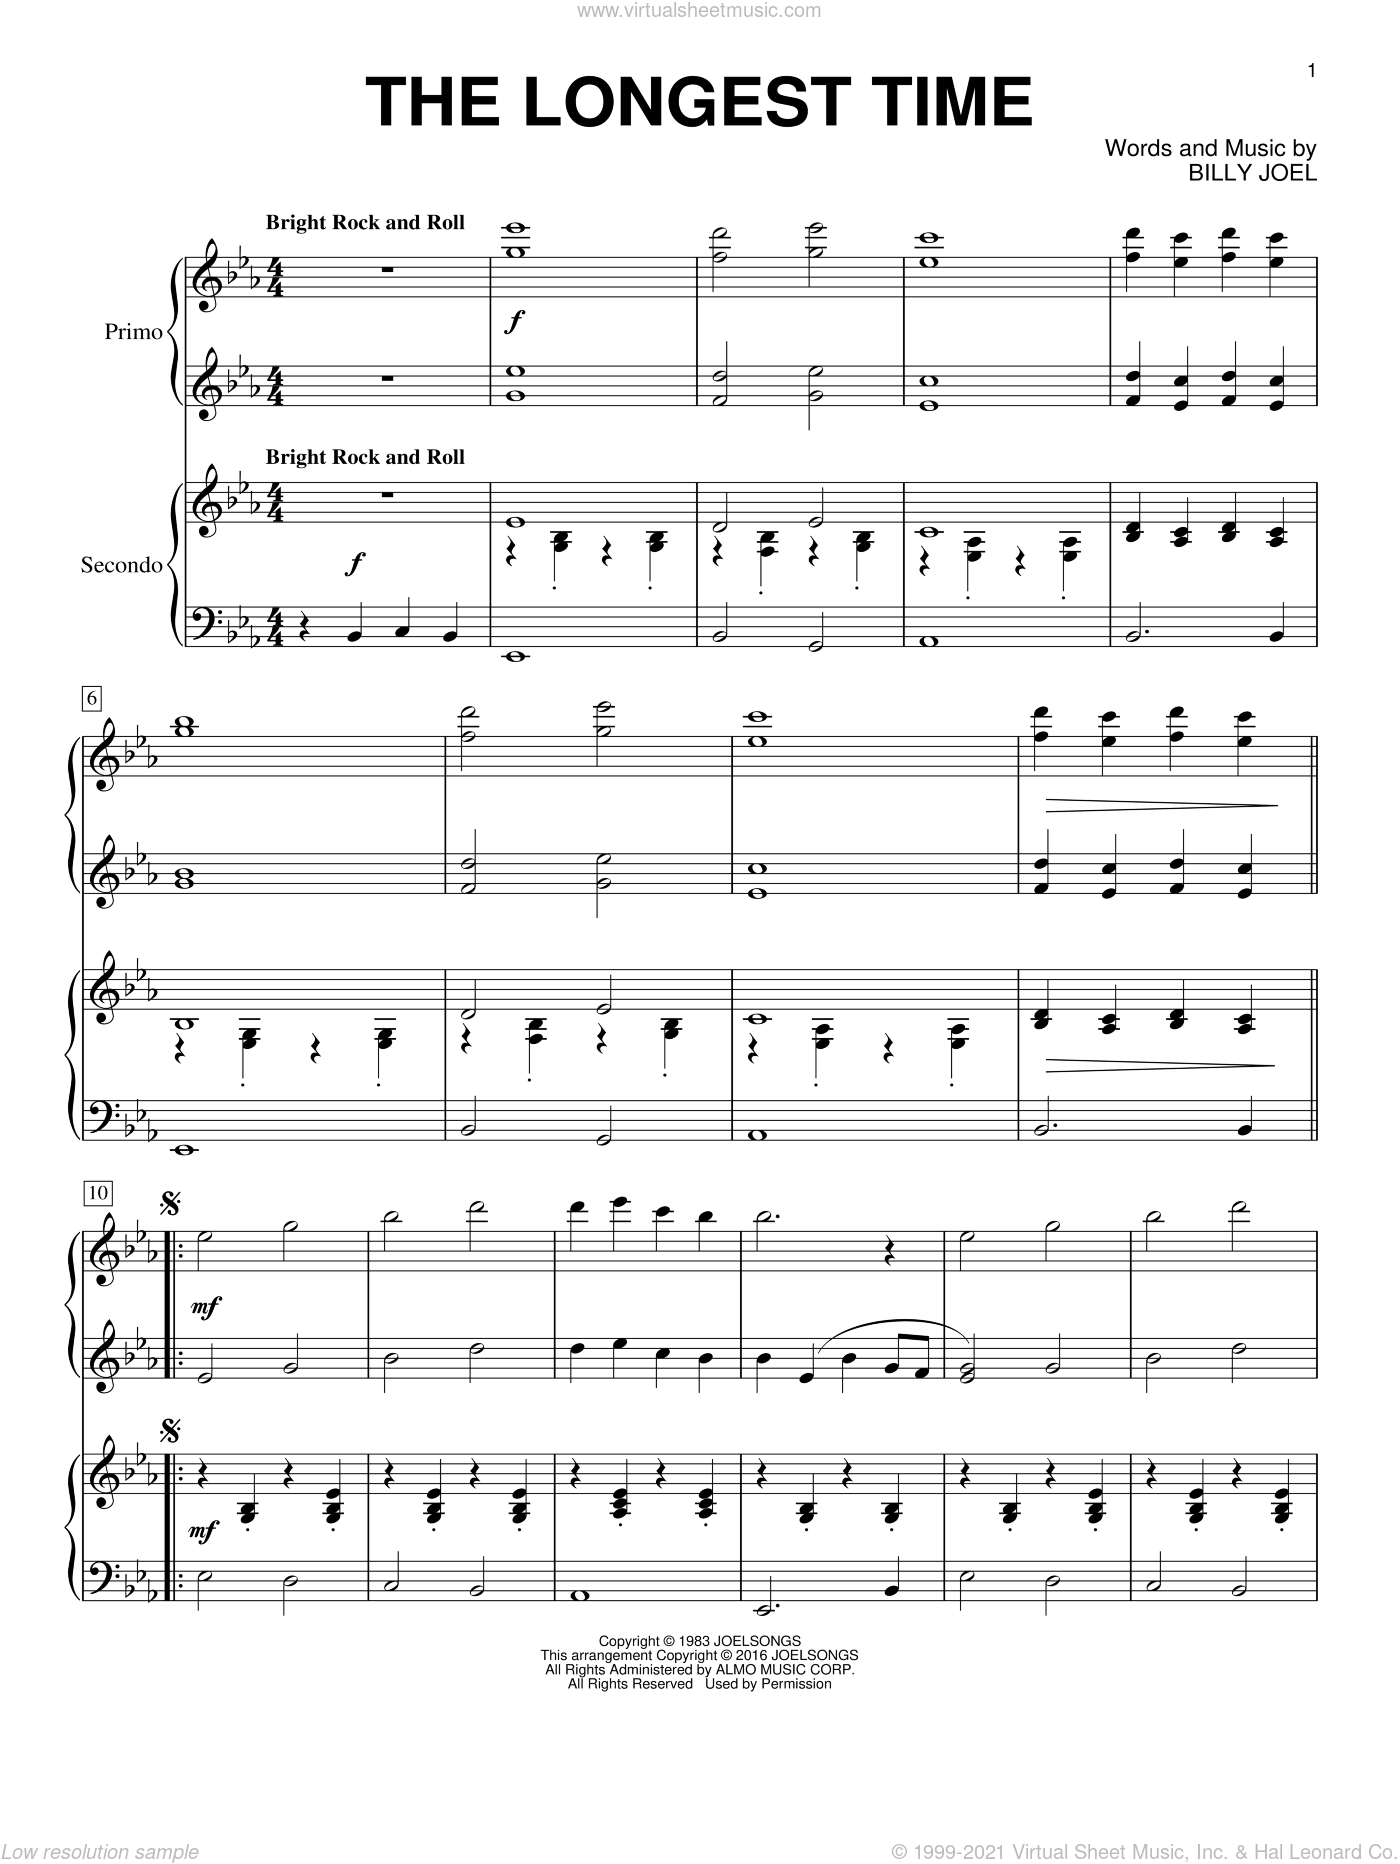 The Longest Time sheet music for piano four hands (duets) by Billy Joel